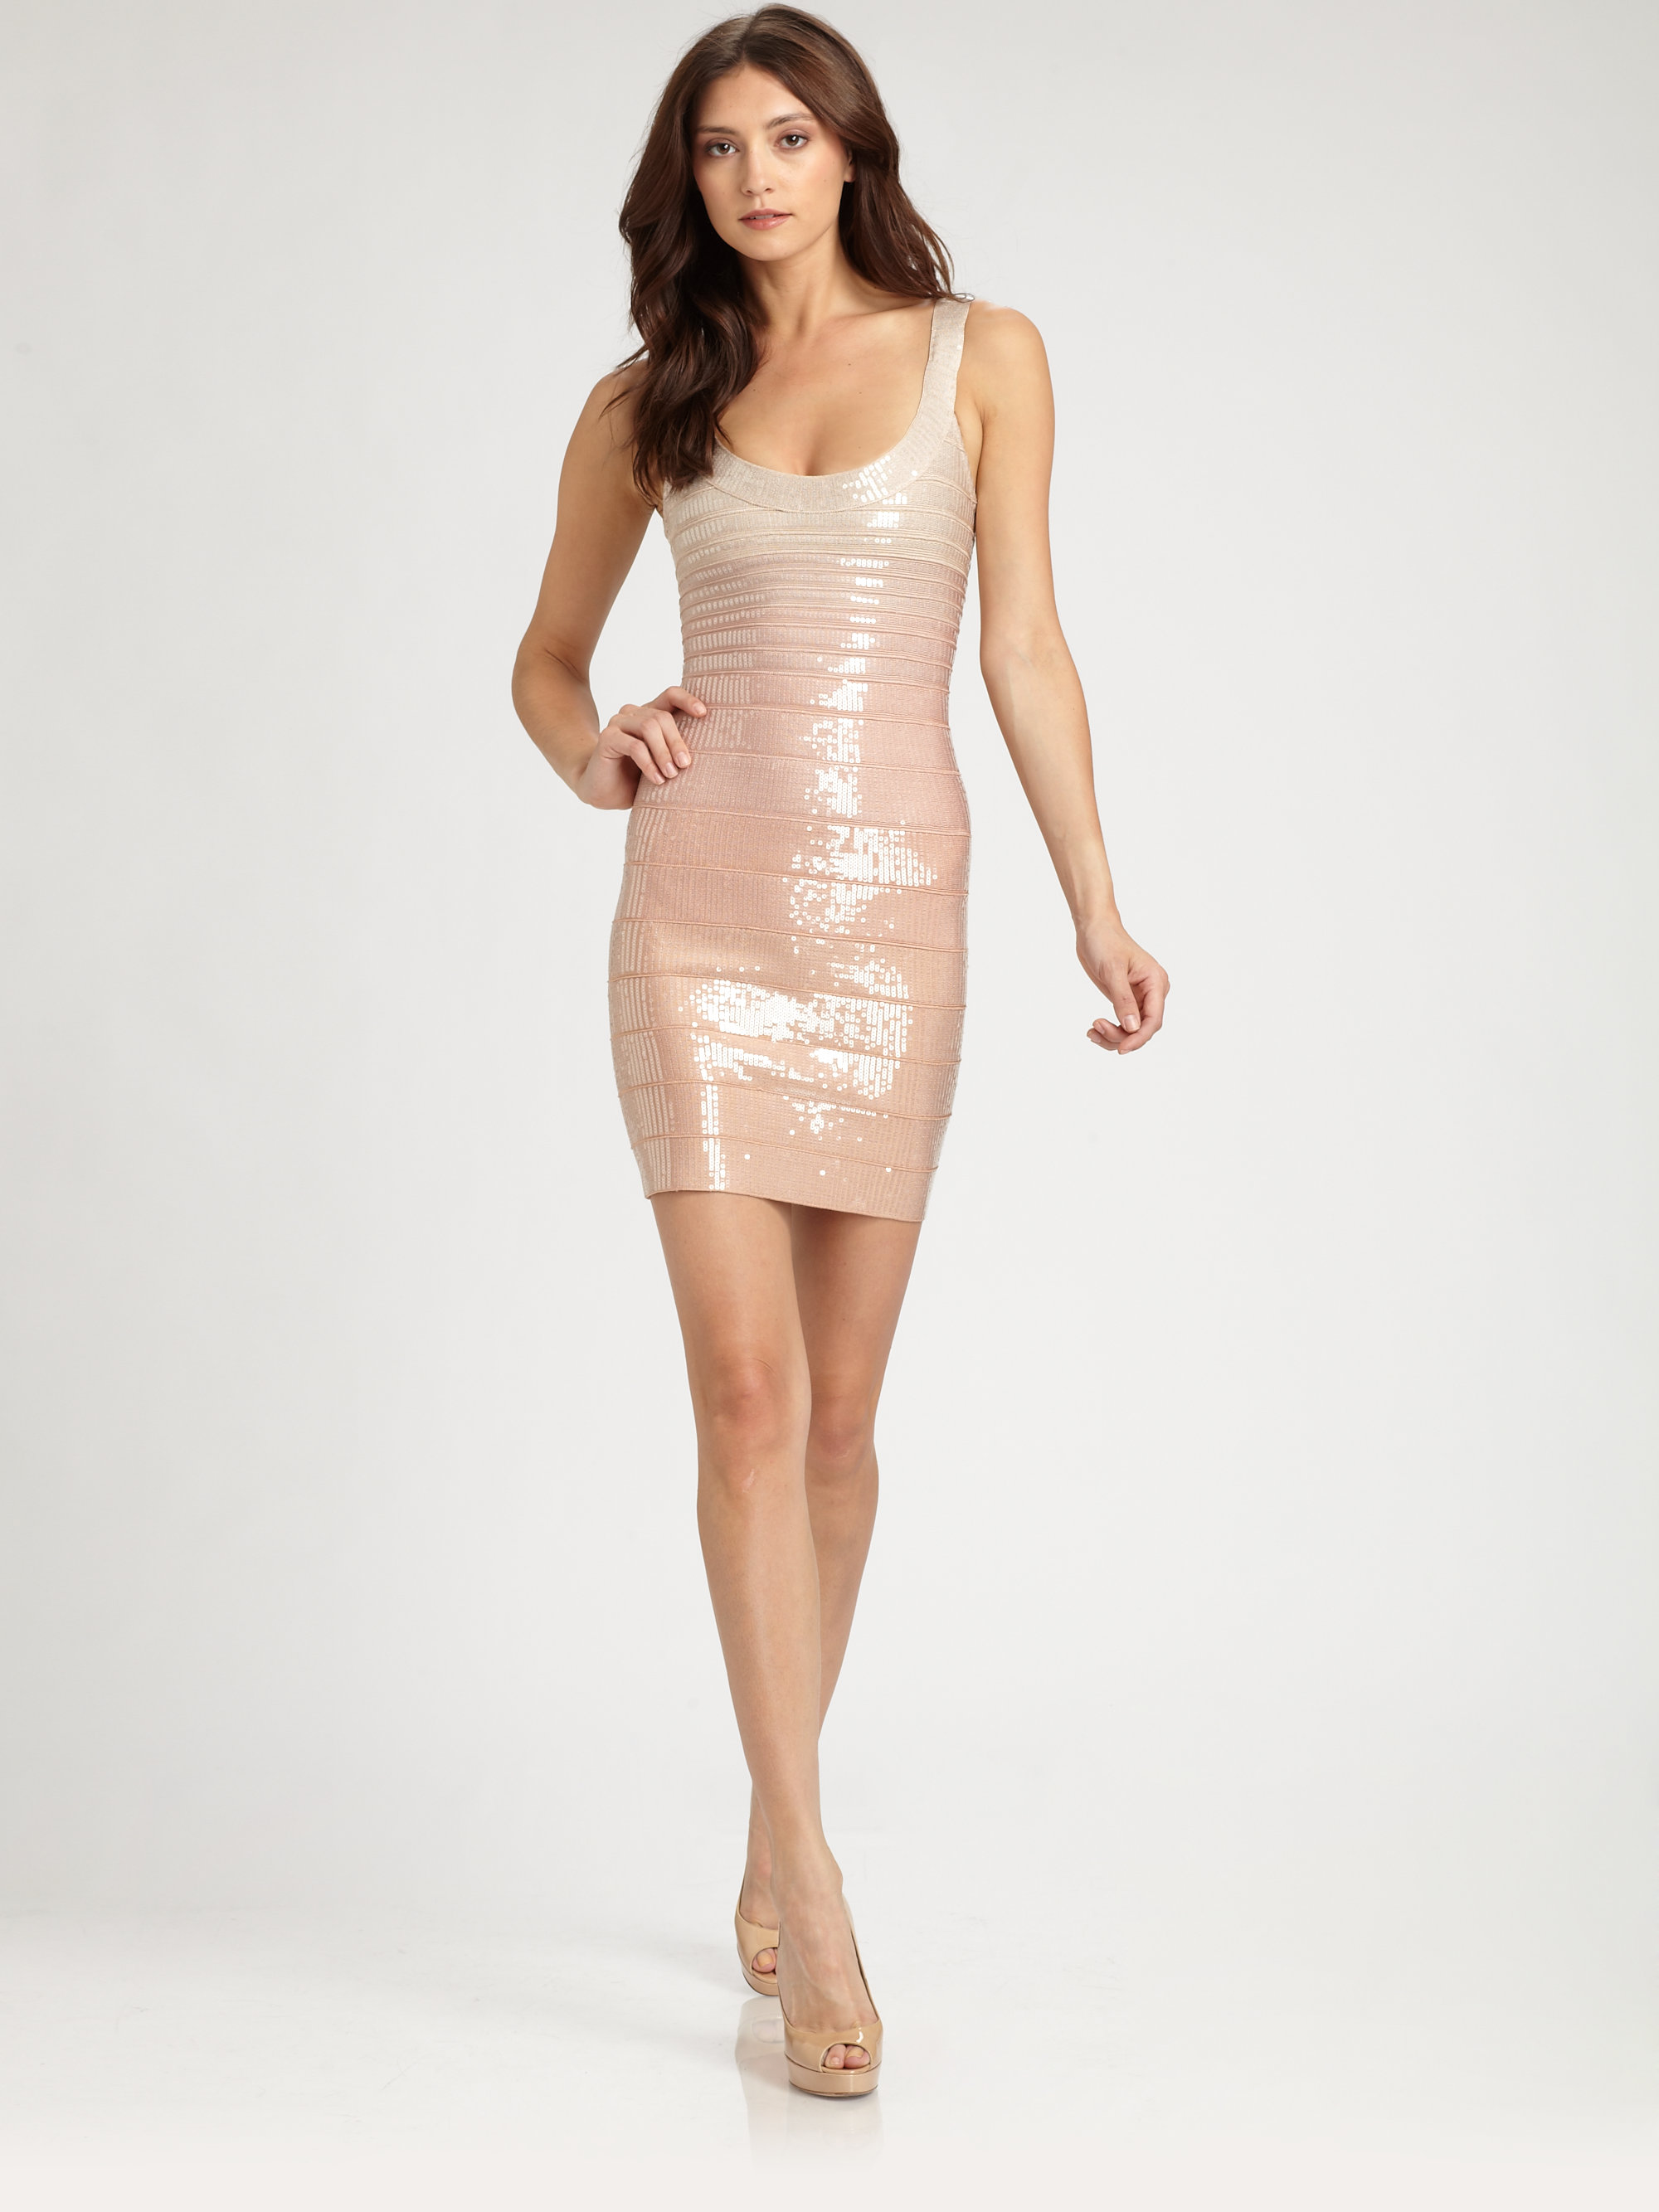 Fringed Metallic Bandage Dress - Blush H pHUNp